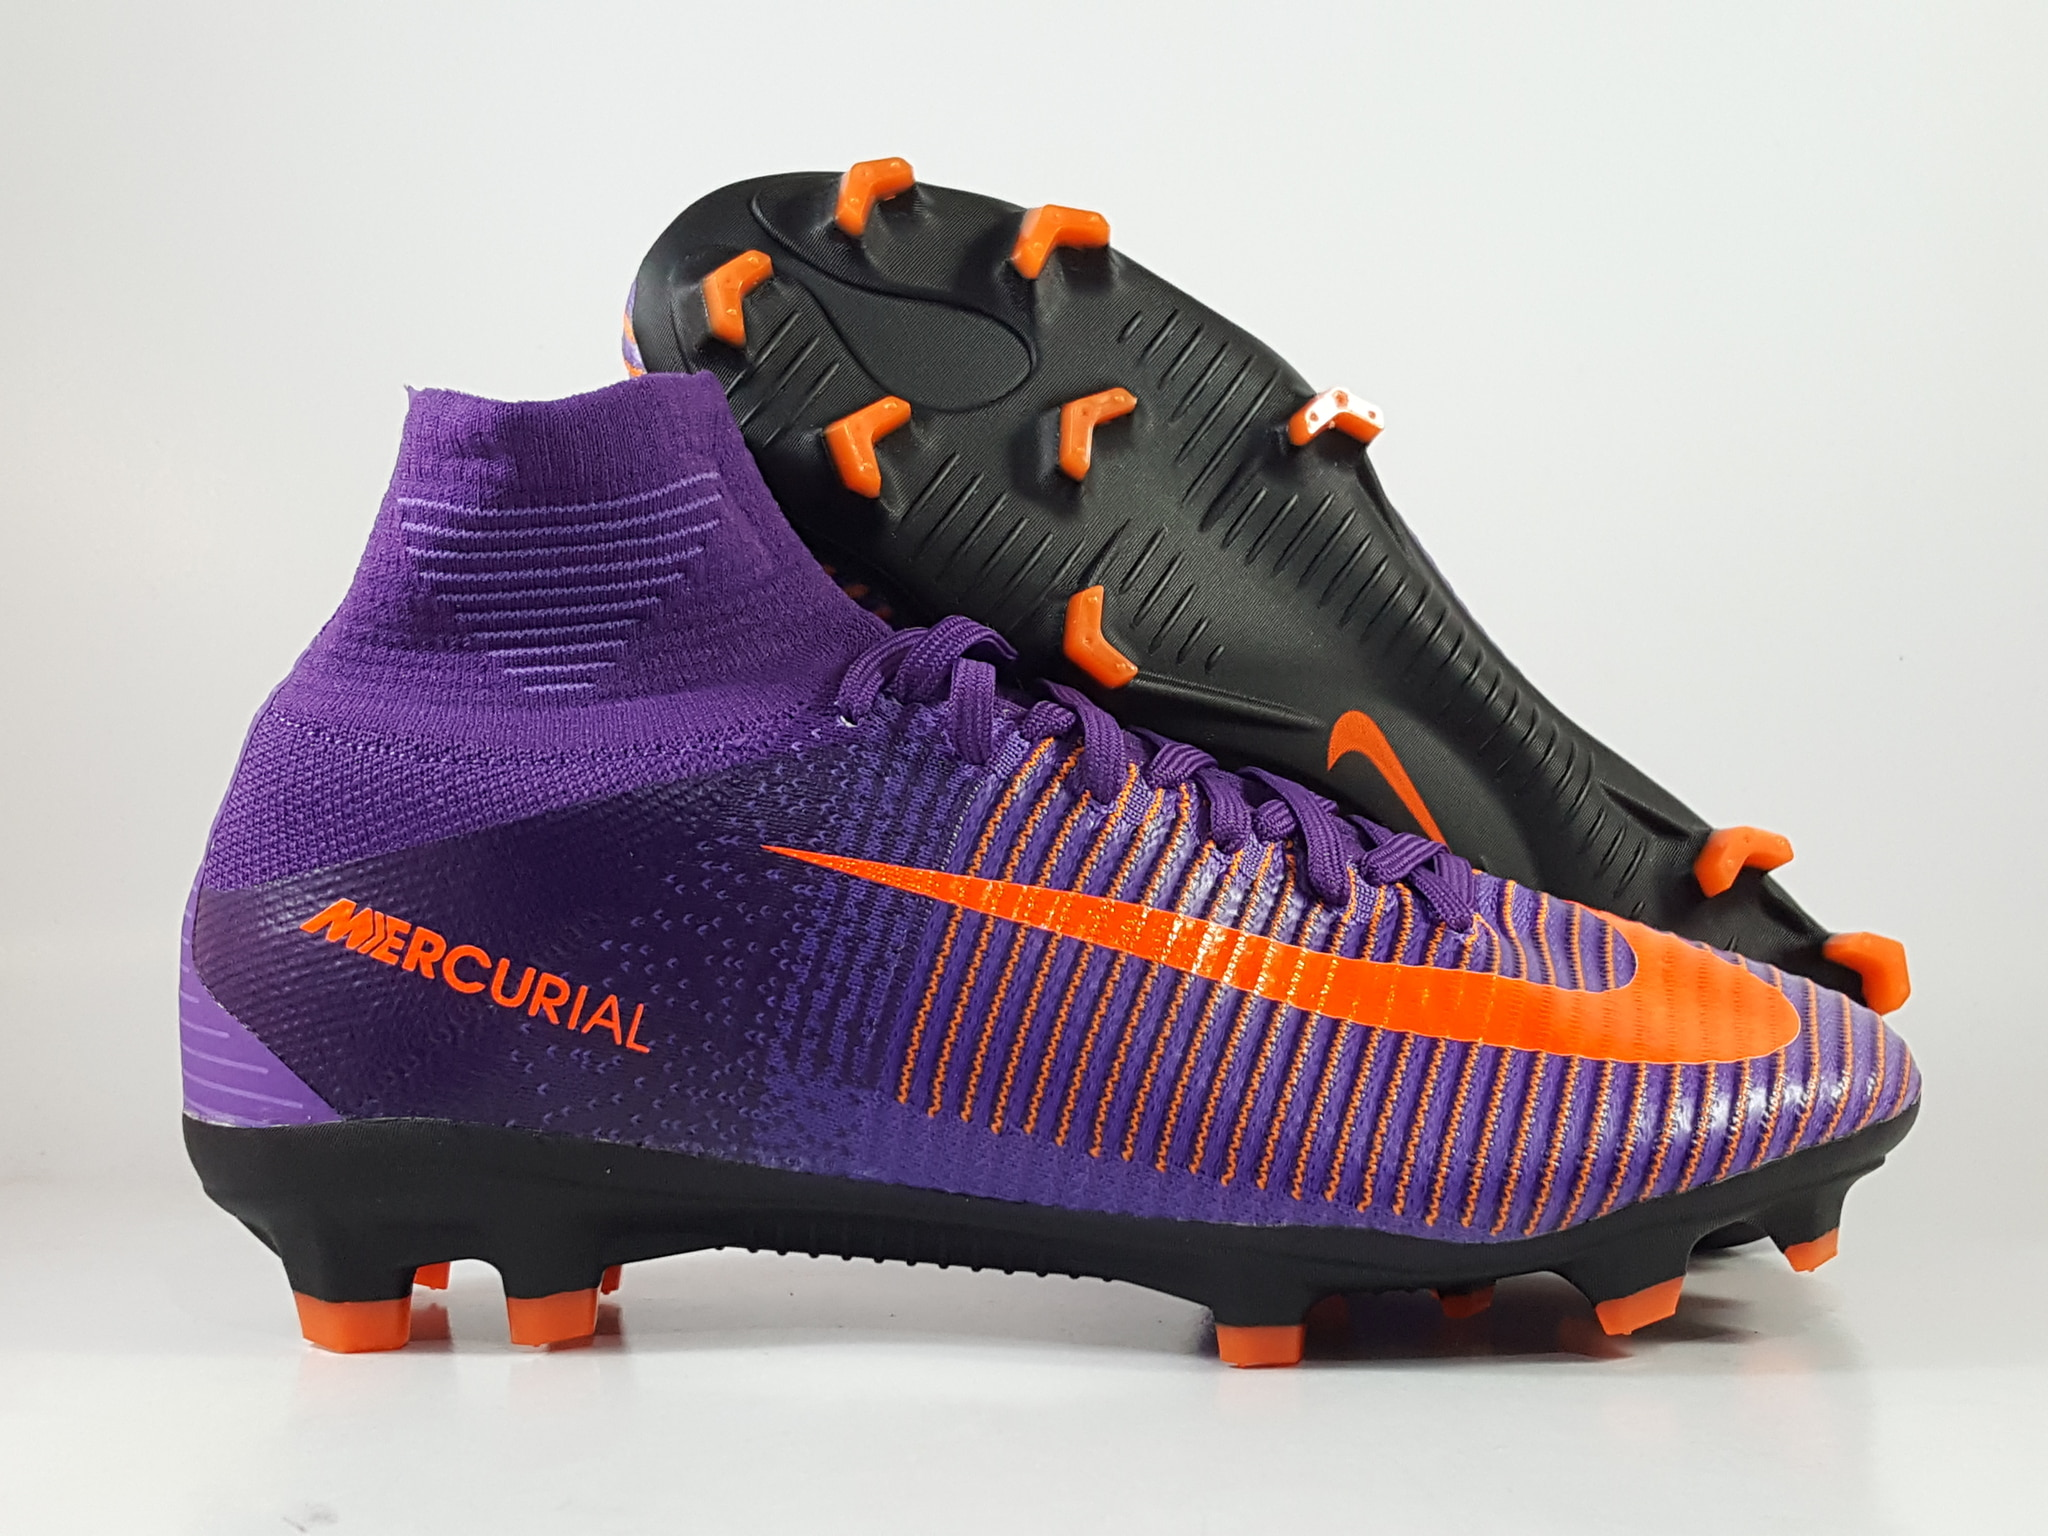 ... promo code for jual sepatu bola nike mercurial superfly v floodlight  replika impor thumbstore tokopedia 19fa1 f96a864530